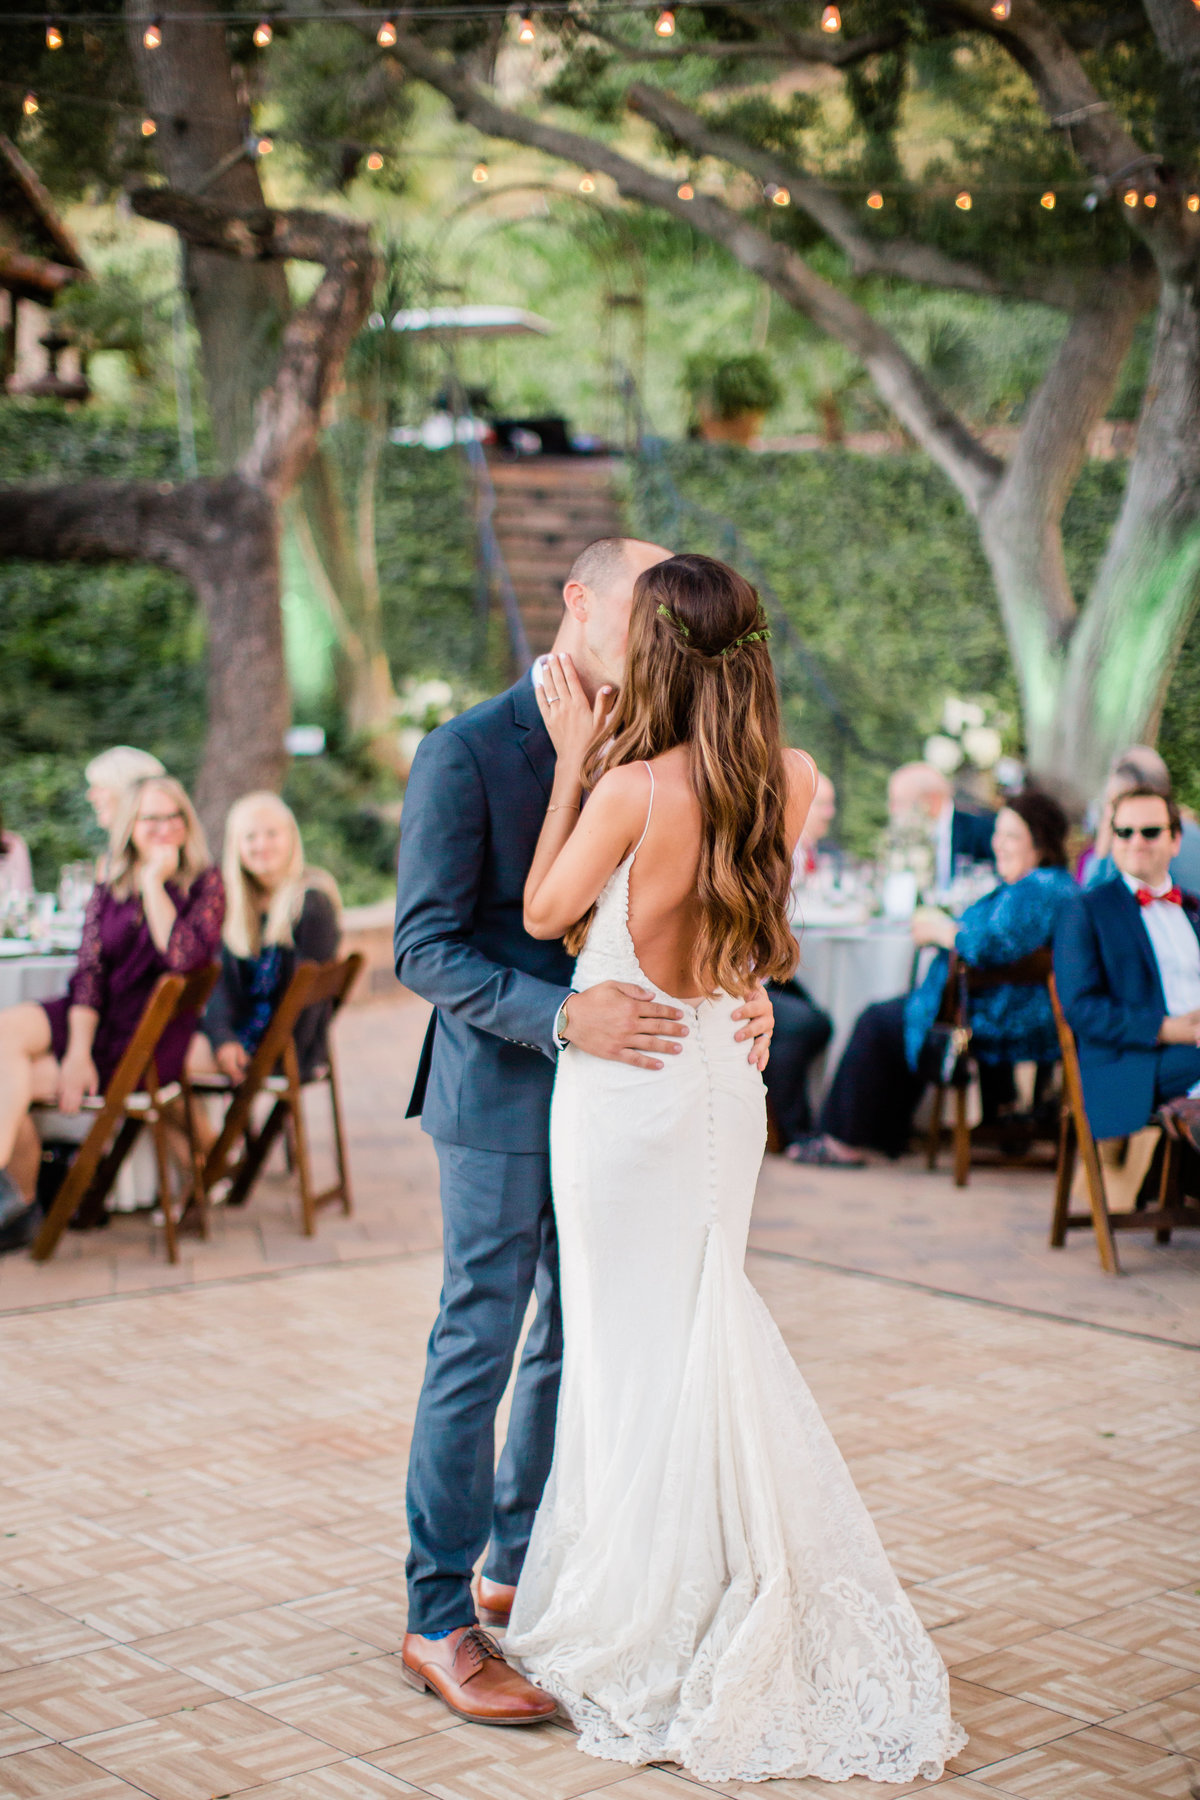 Paige & Thomas are Married| Circle Oak Ranch Wedding | Katie Schoepflin Photography741